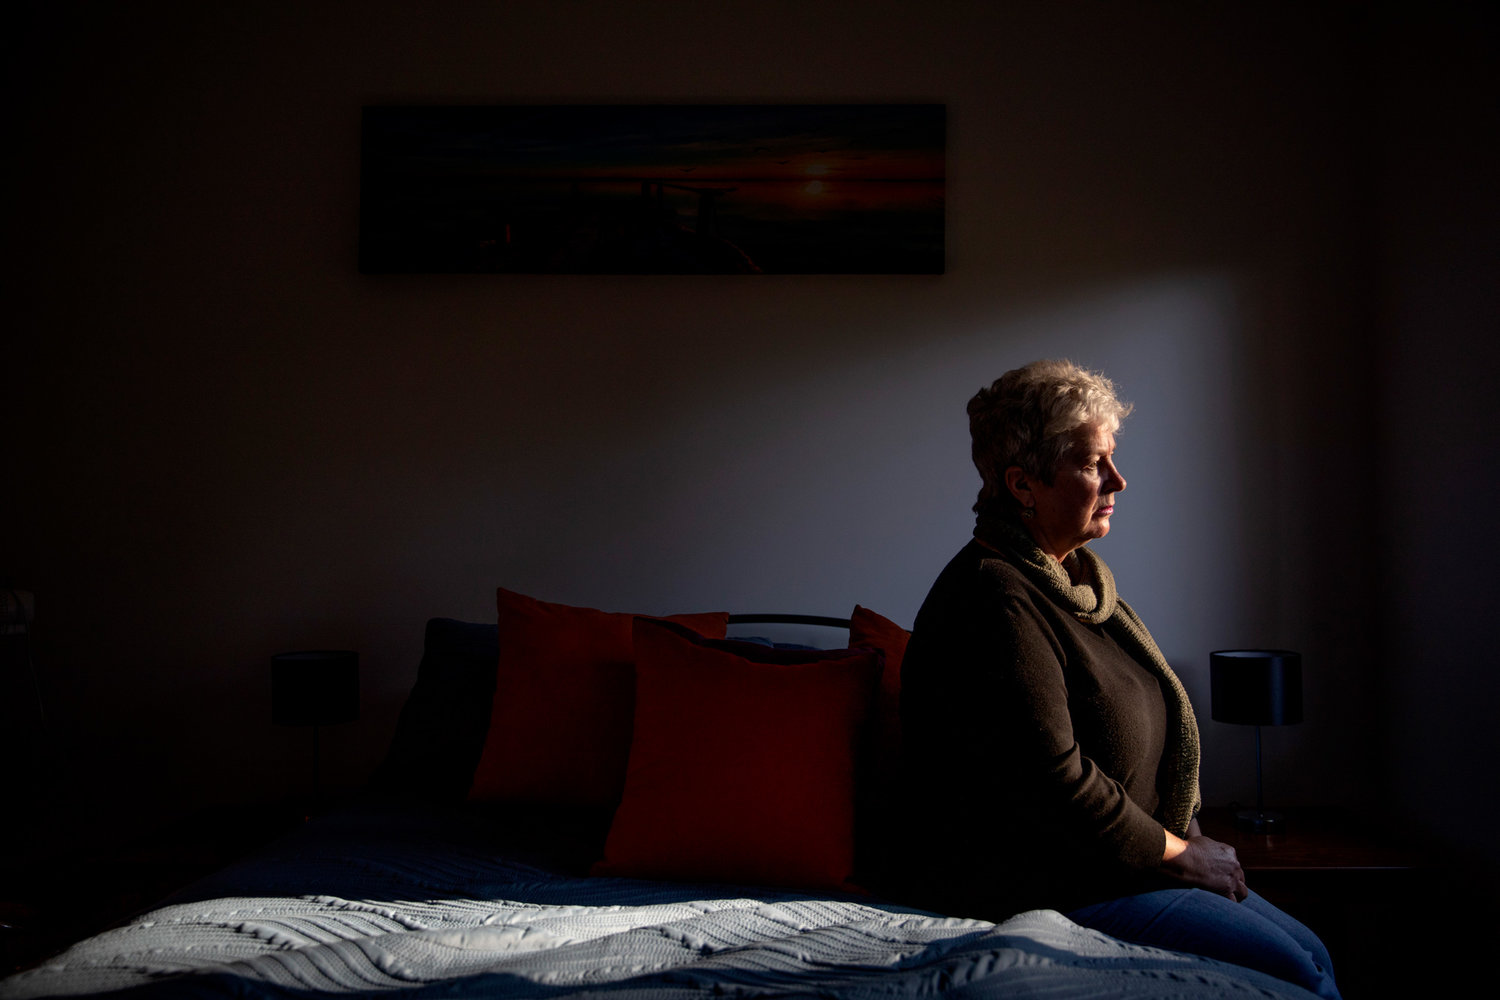 Australian mother fights to save addicted son from opioids